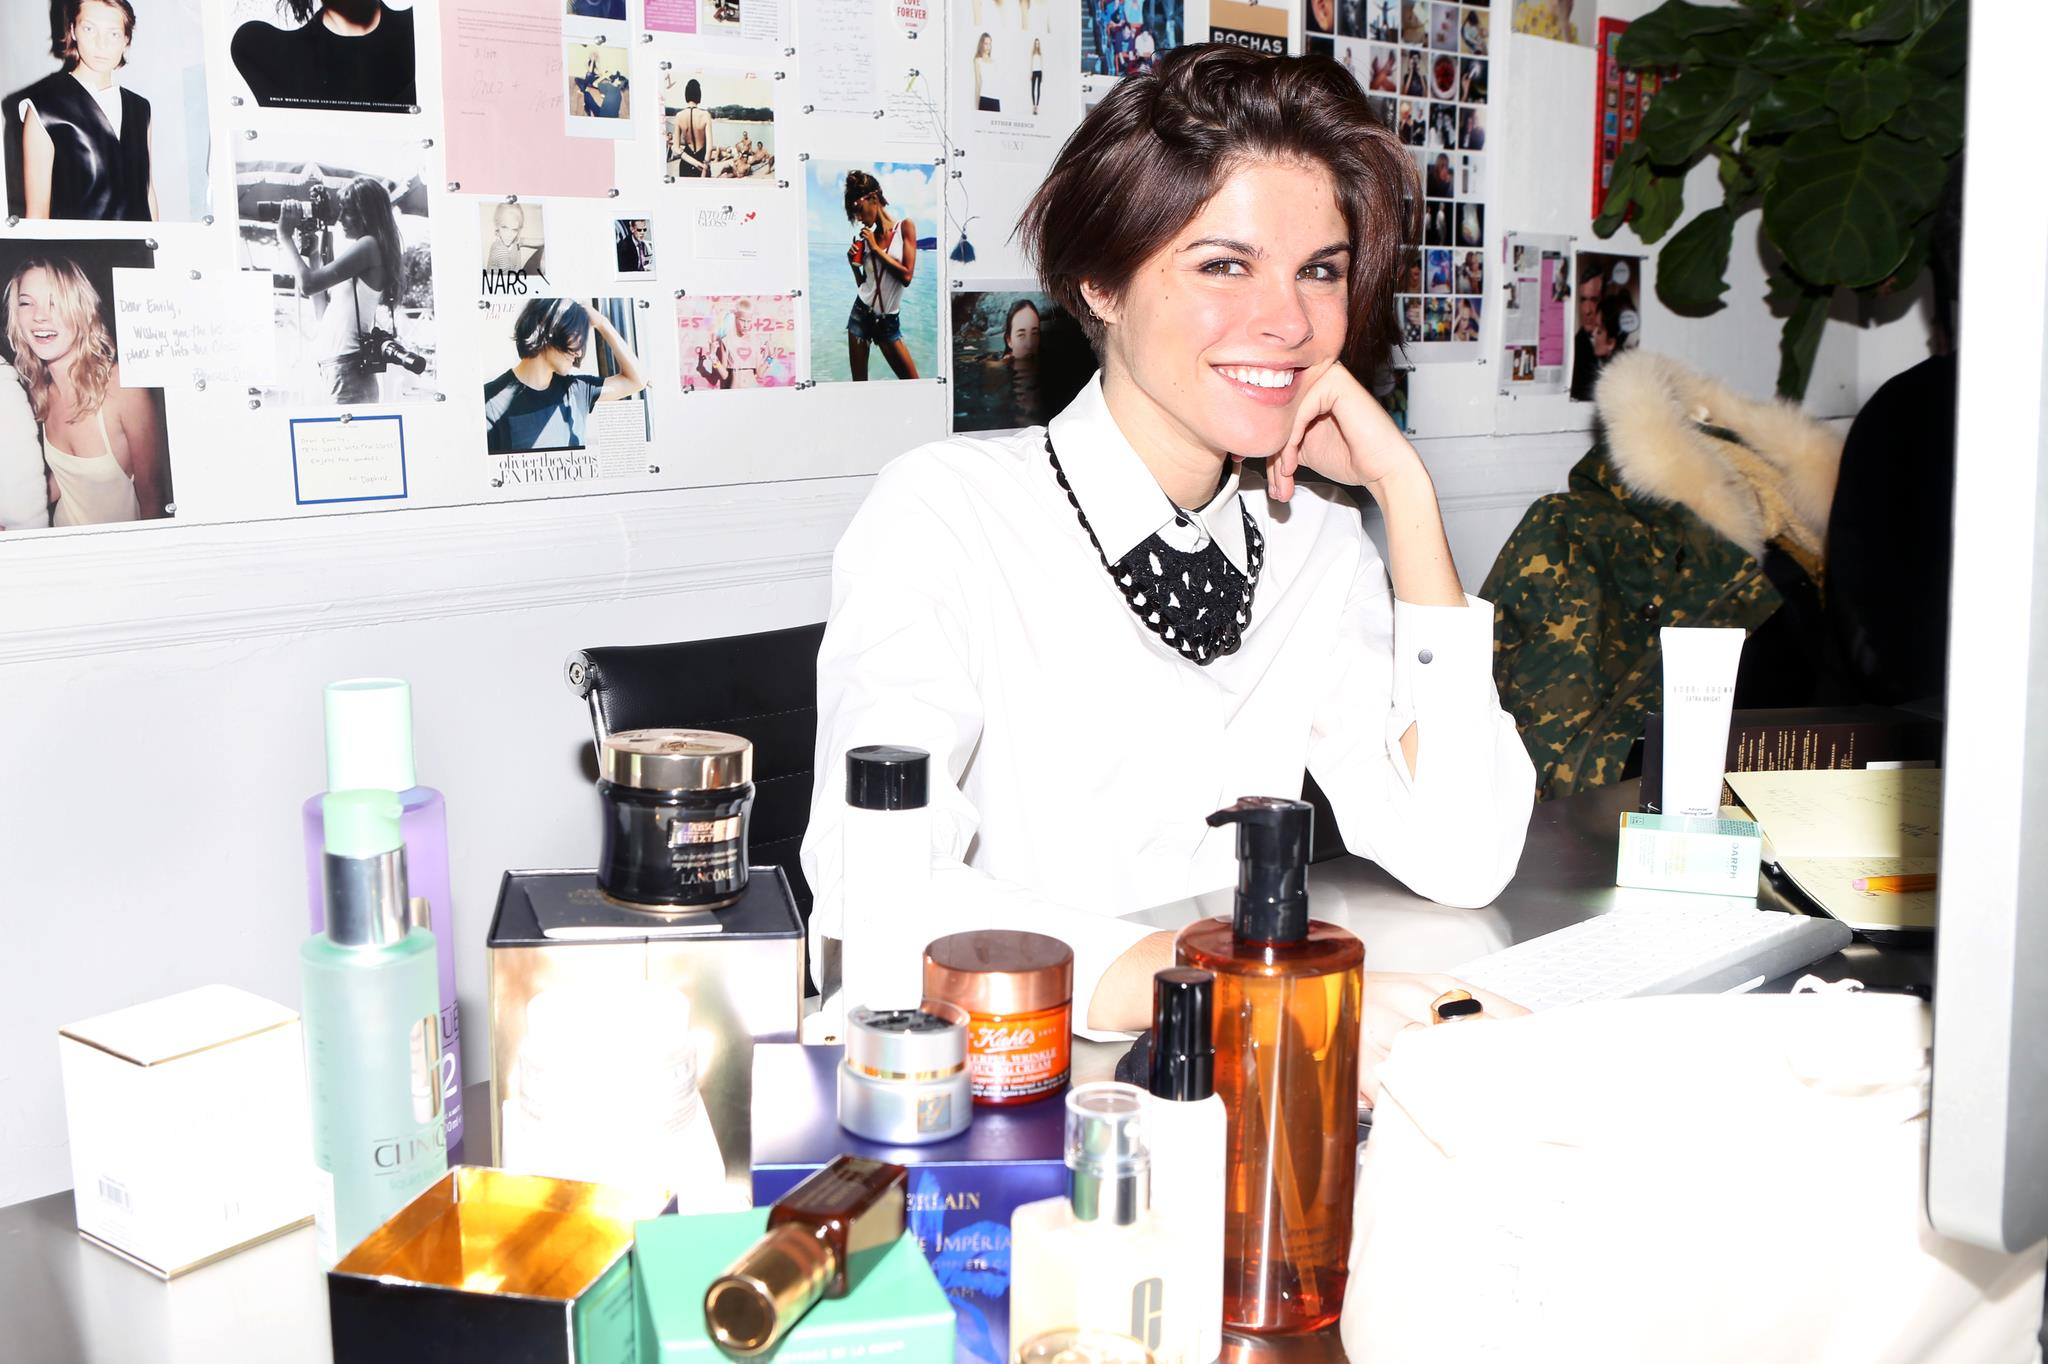 Emily Weiss in an interview with international cosmetics distributor